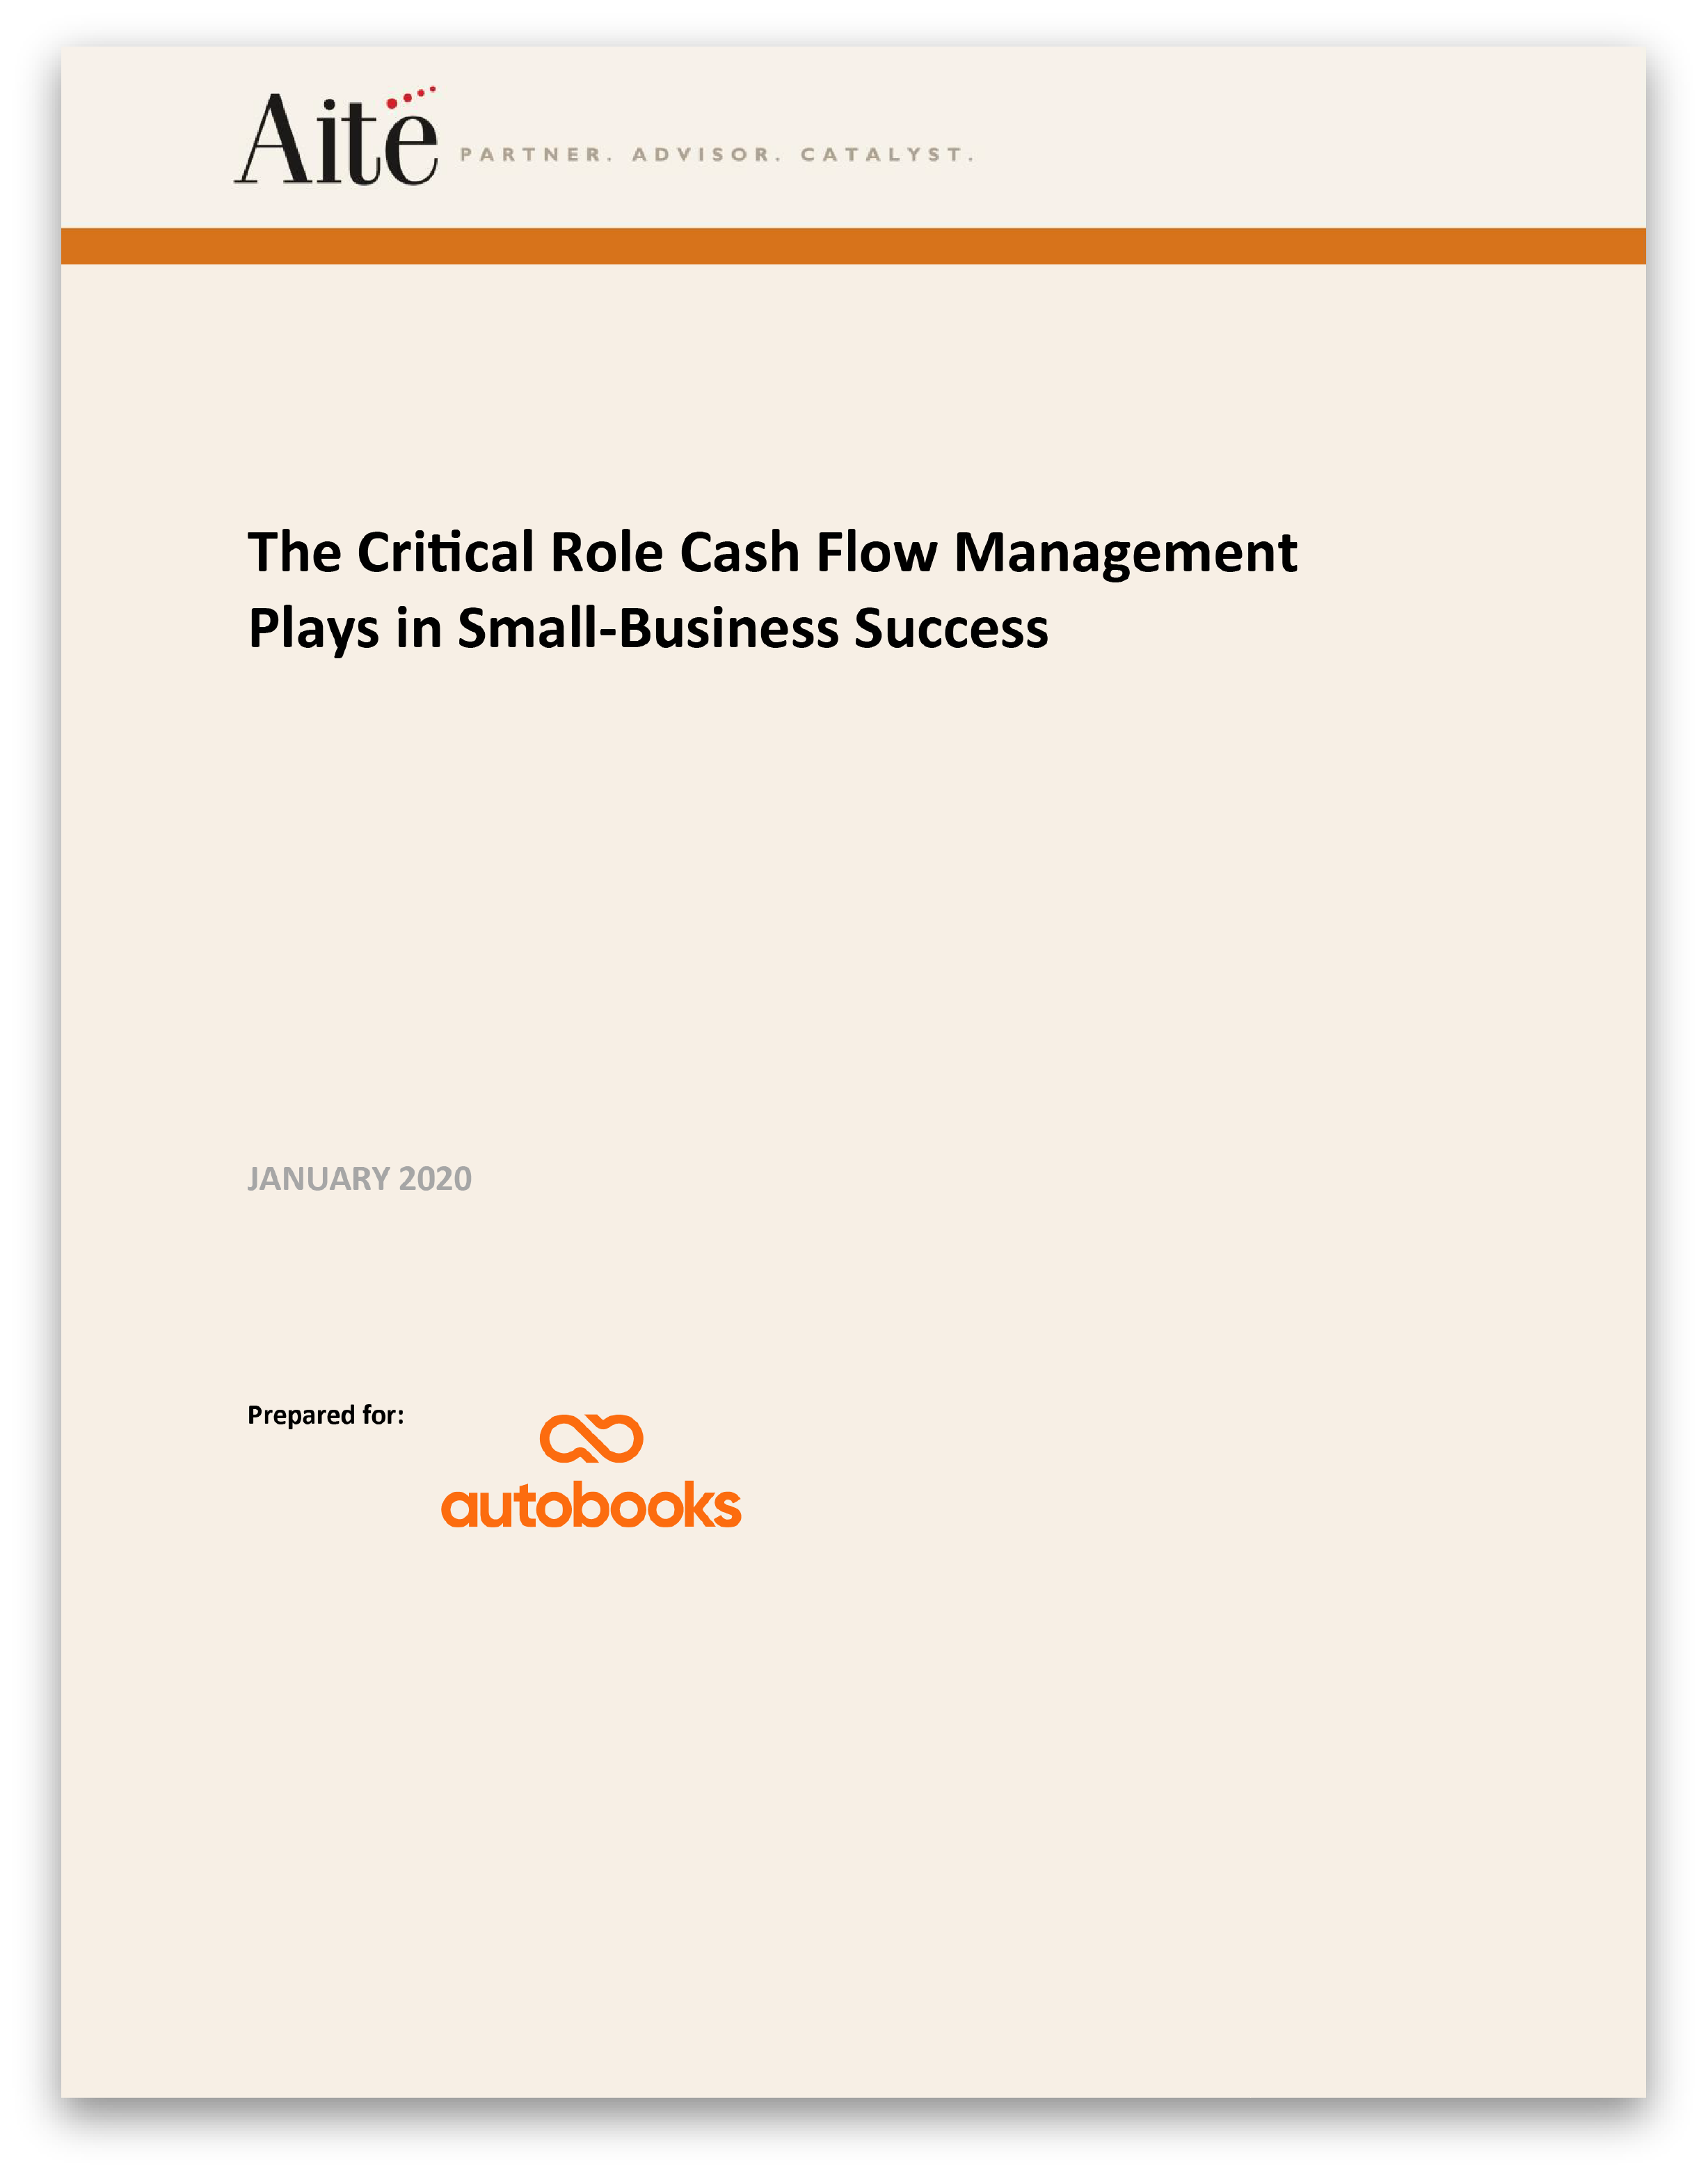 The critical role cash flow management plays in small business success